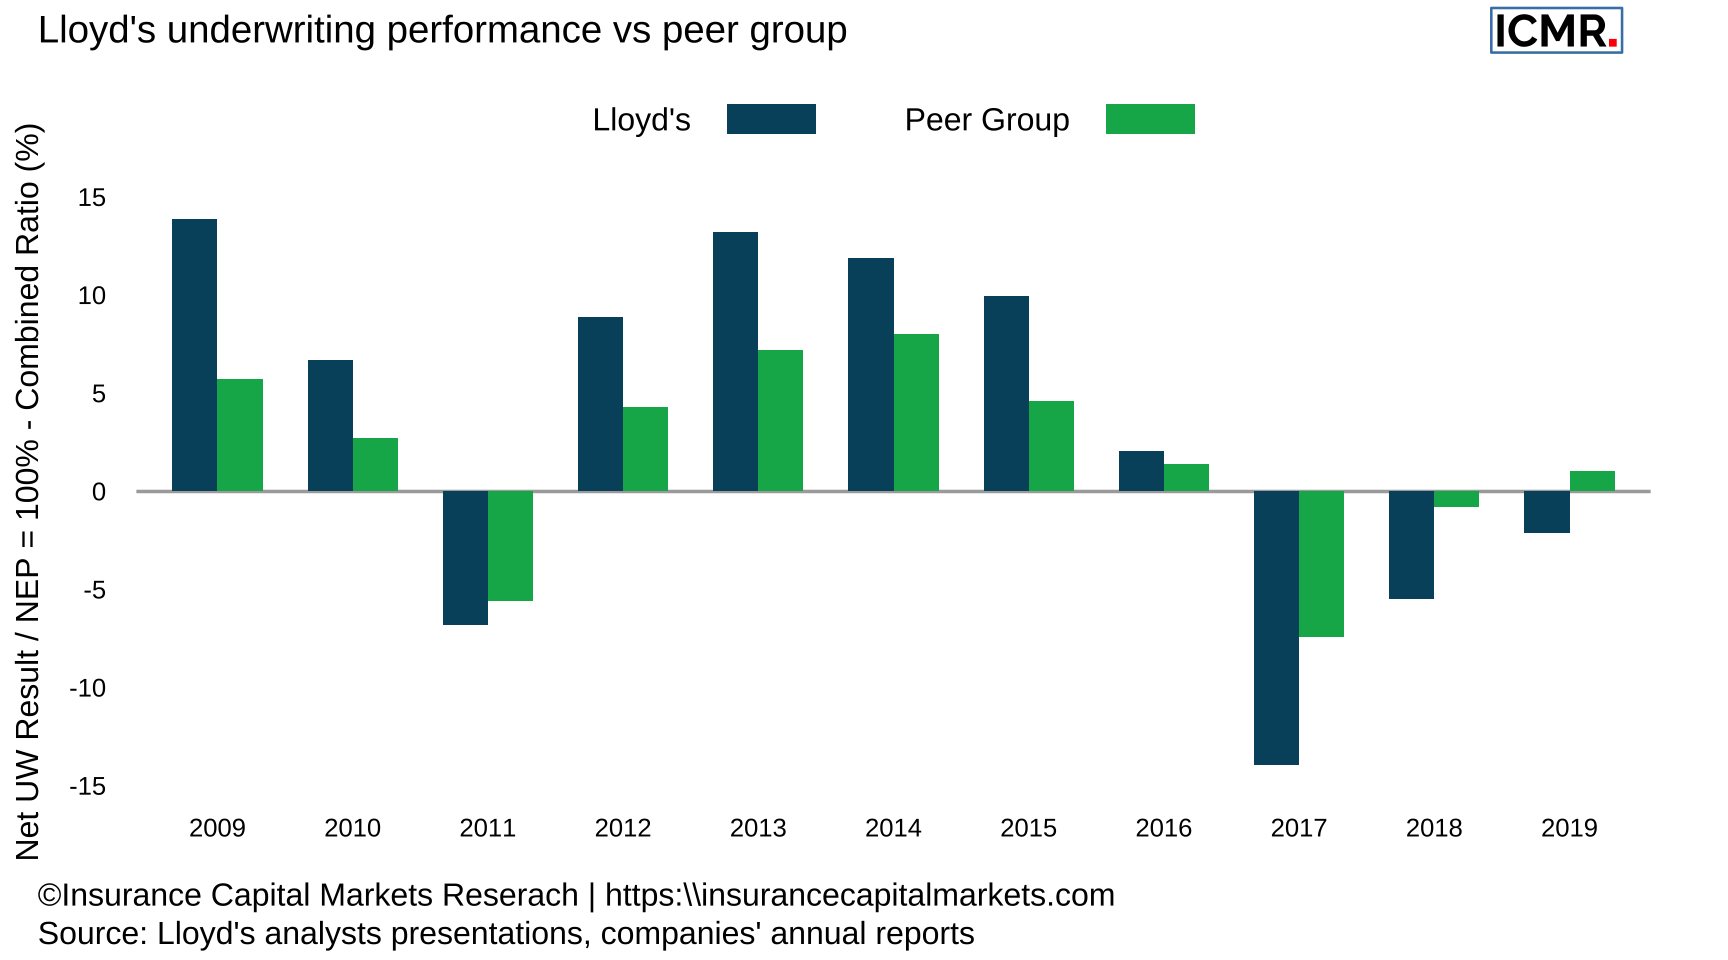 Lloyd's combined ratio performance against peer group